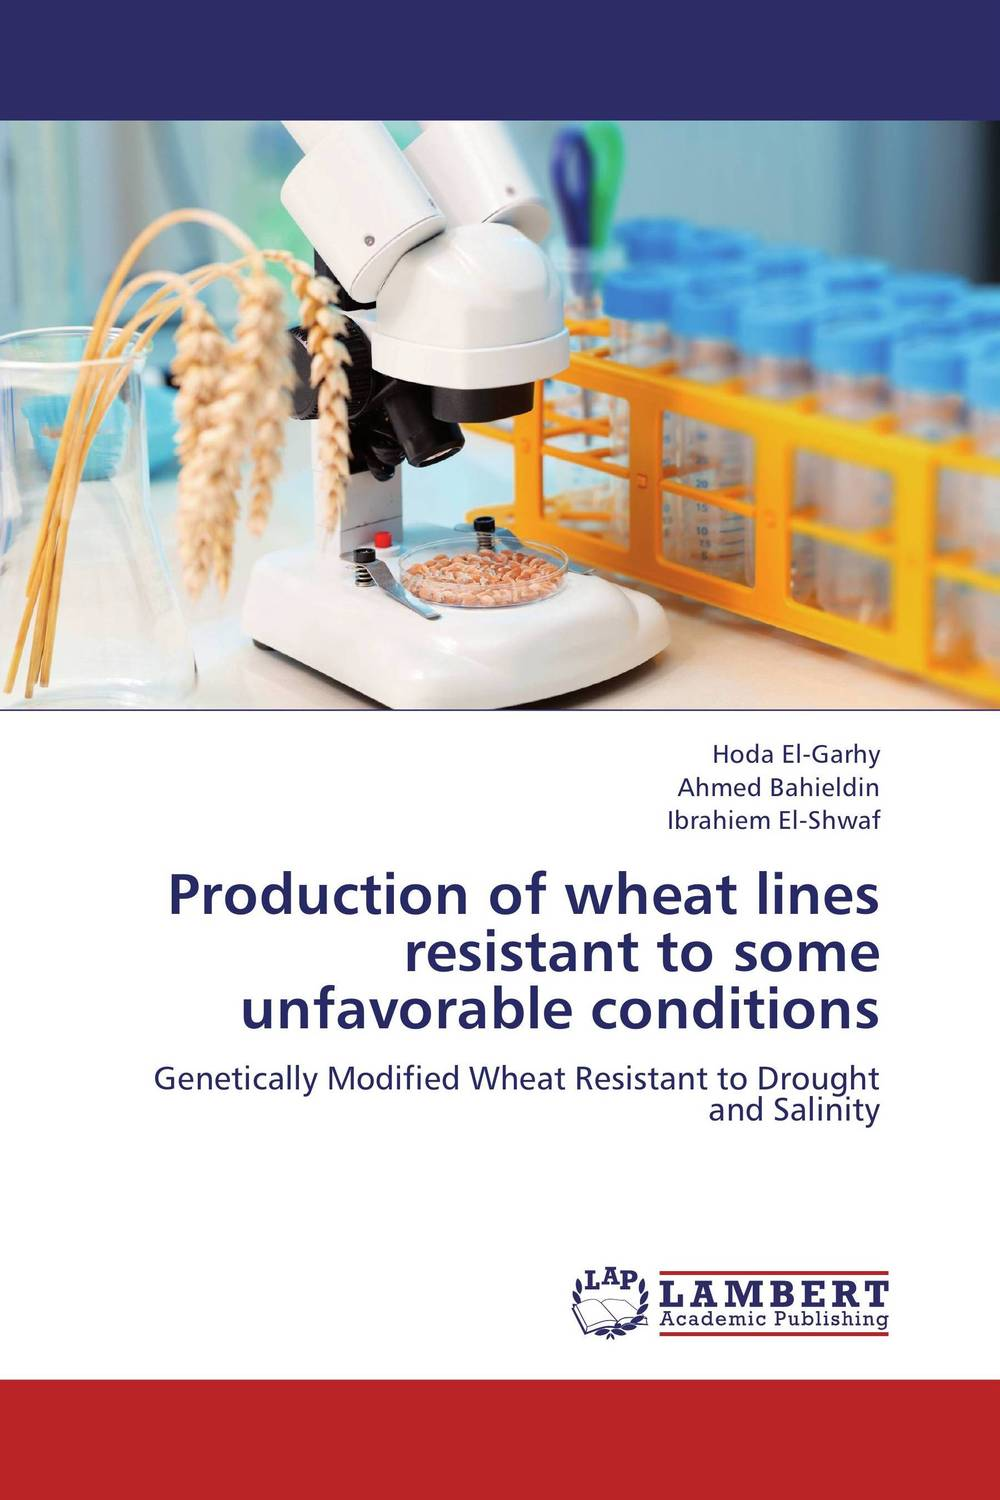 Production of wheat lines resistant to some unfavorable conditions purnima sareen sundeep kumar and rakesh singh molecular and pathological characterization of slow rusting in wheat